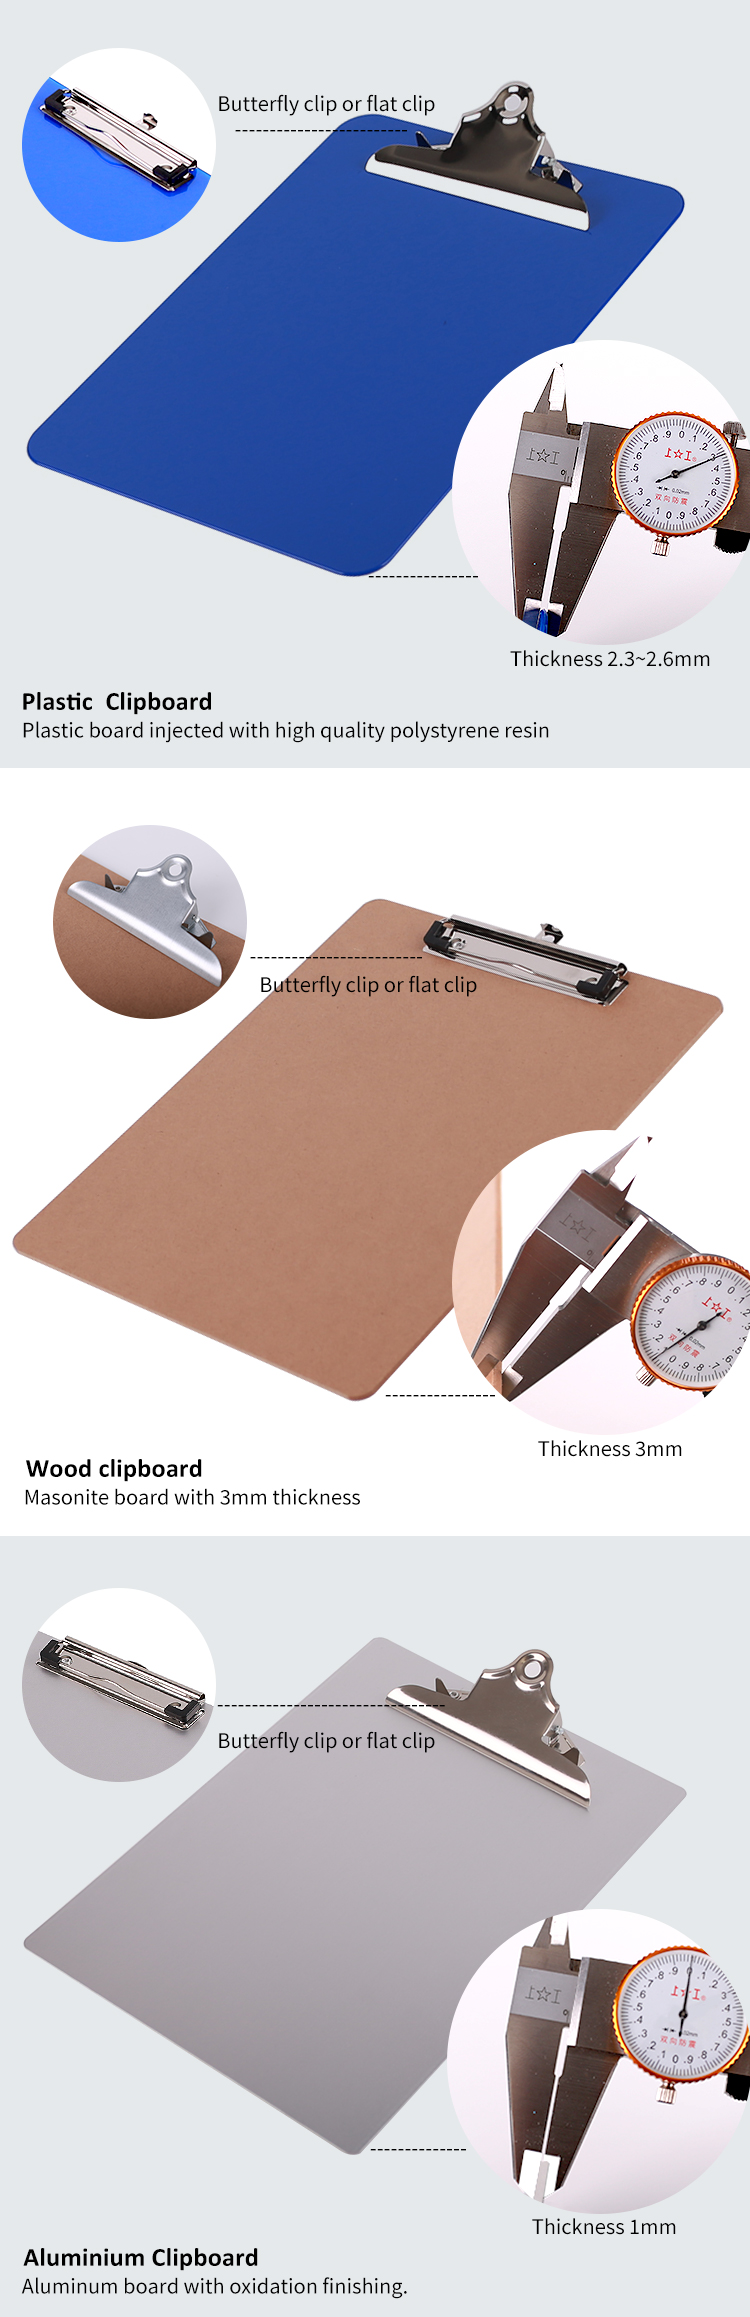 Office Stationery Environmental Brown  Wood A4/mdf Clip Board Mdf Wooden A4 6PK Clipboard